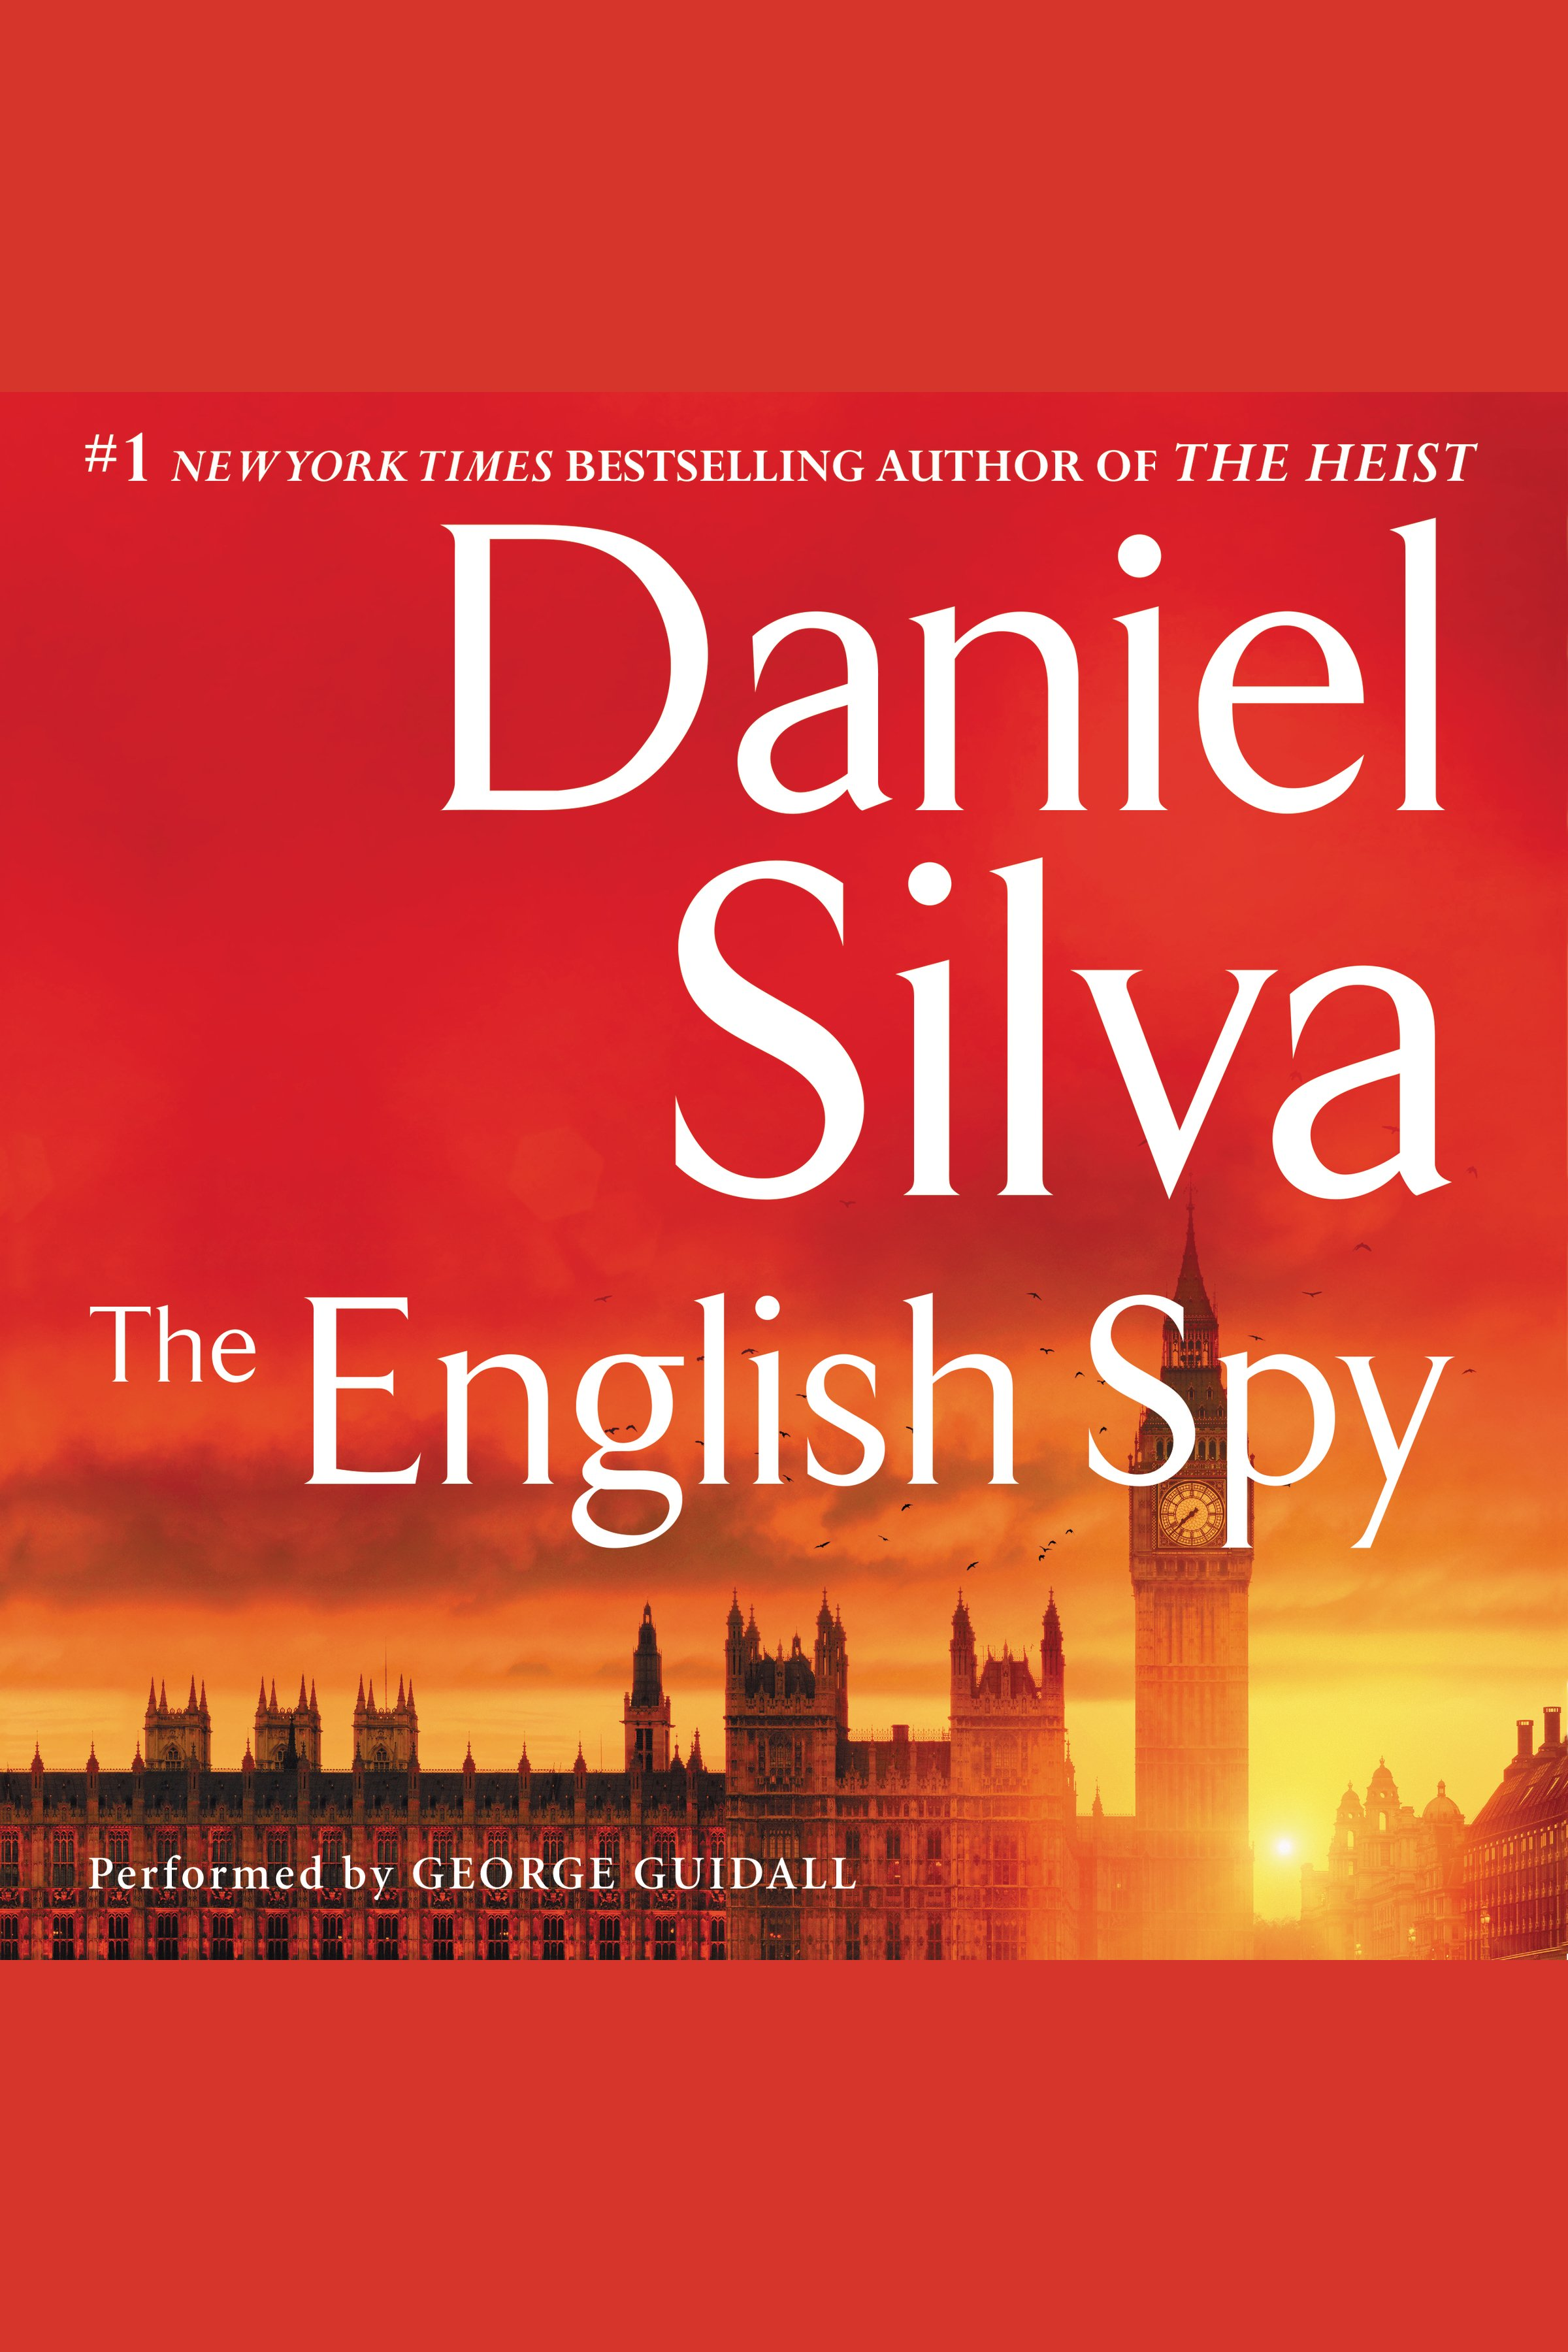 The English spy cover image